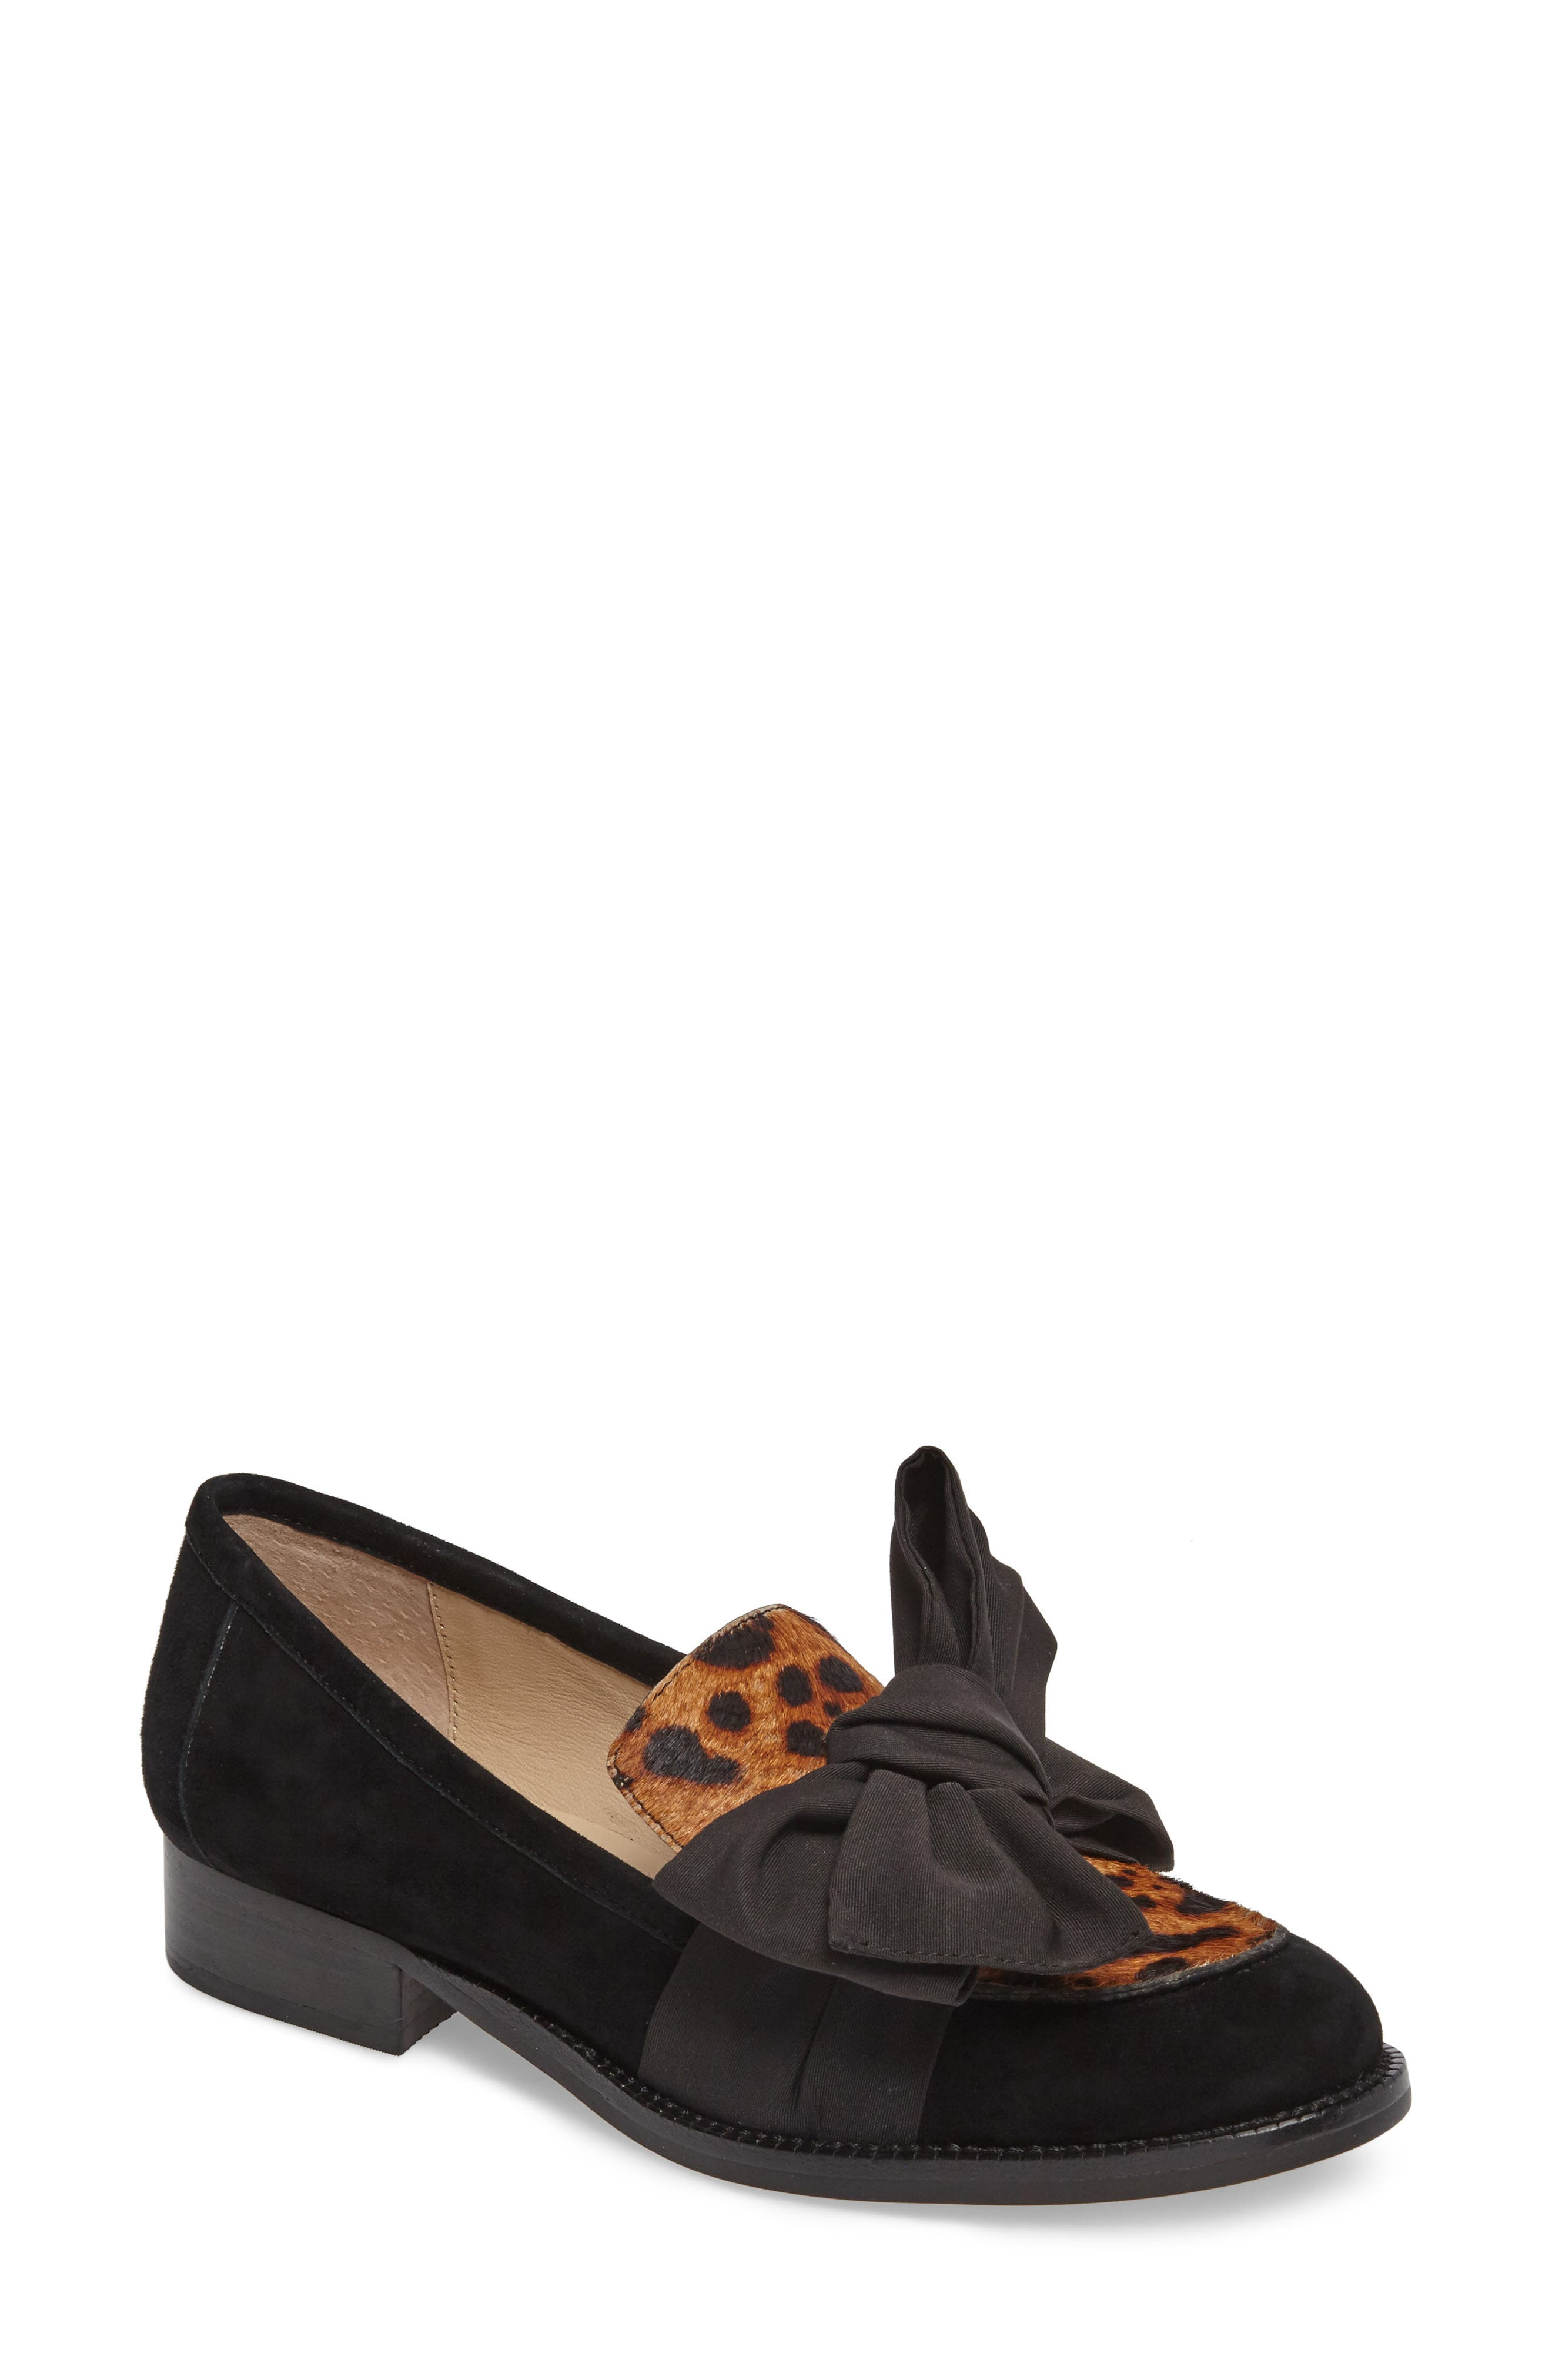 Violet Bow Loafer,                             Main thumbnail 1, color,                             Leopard Calf Hair/ Suede